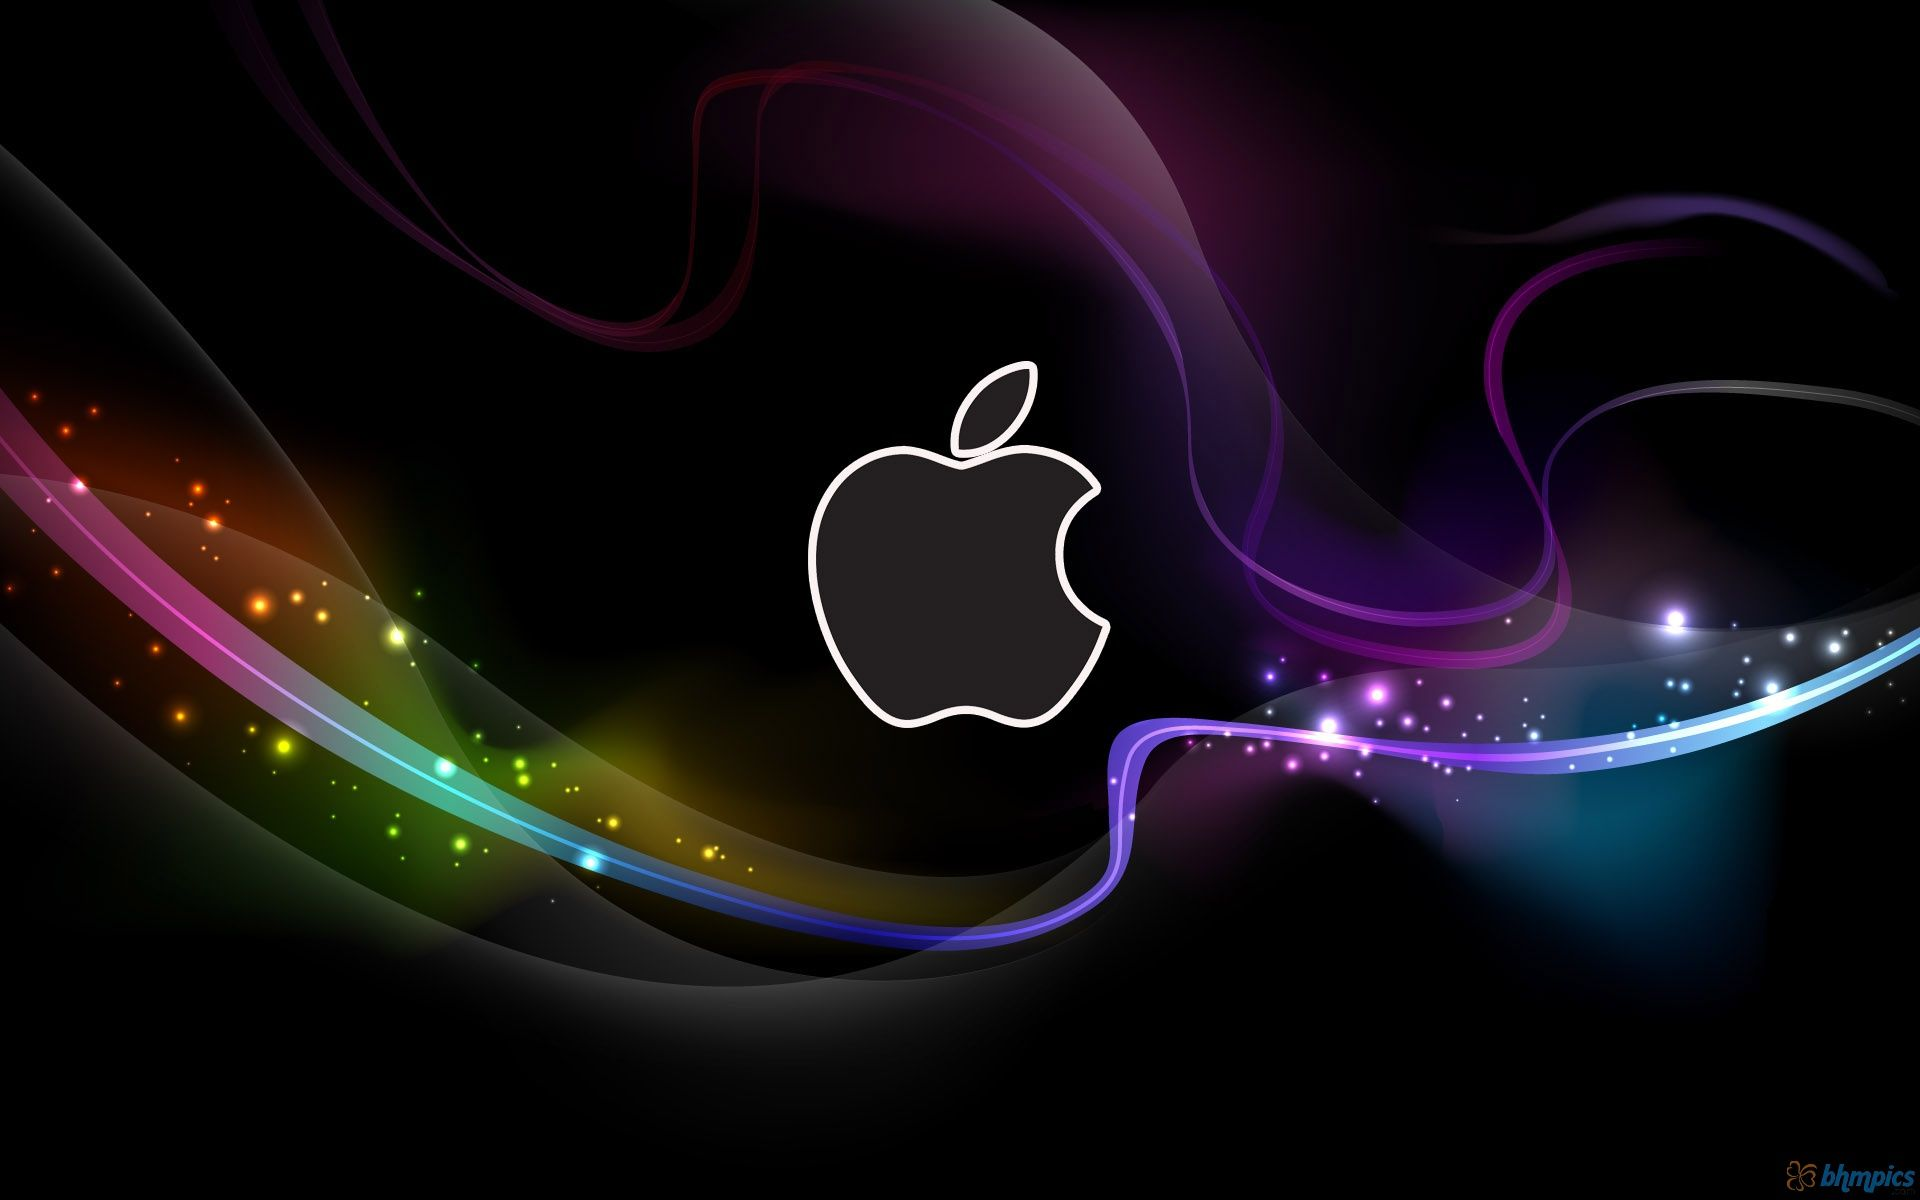 Apple HD wallpaper for download in Laptop and desktop